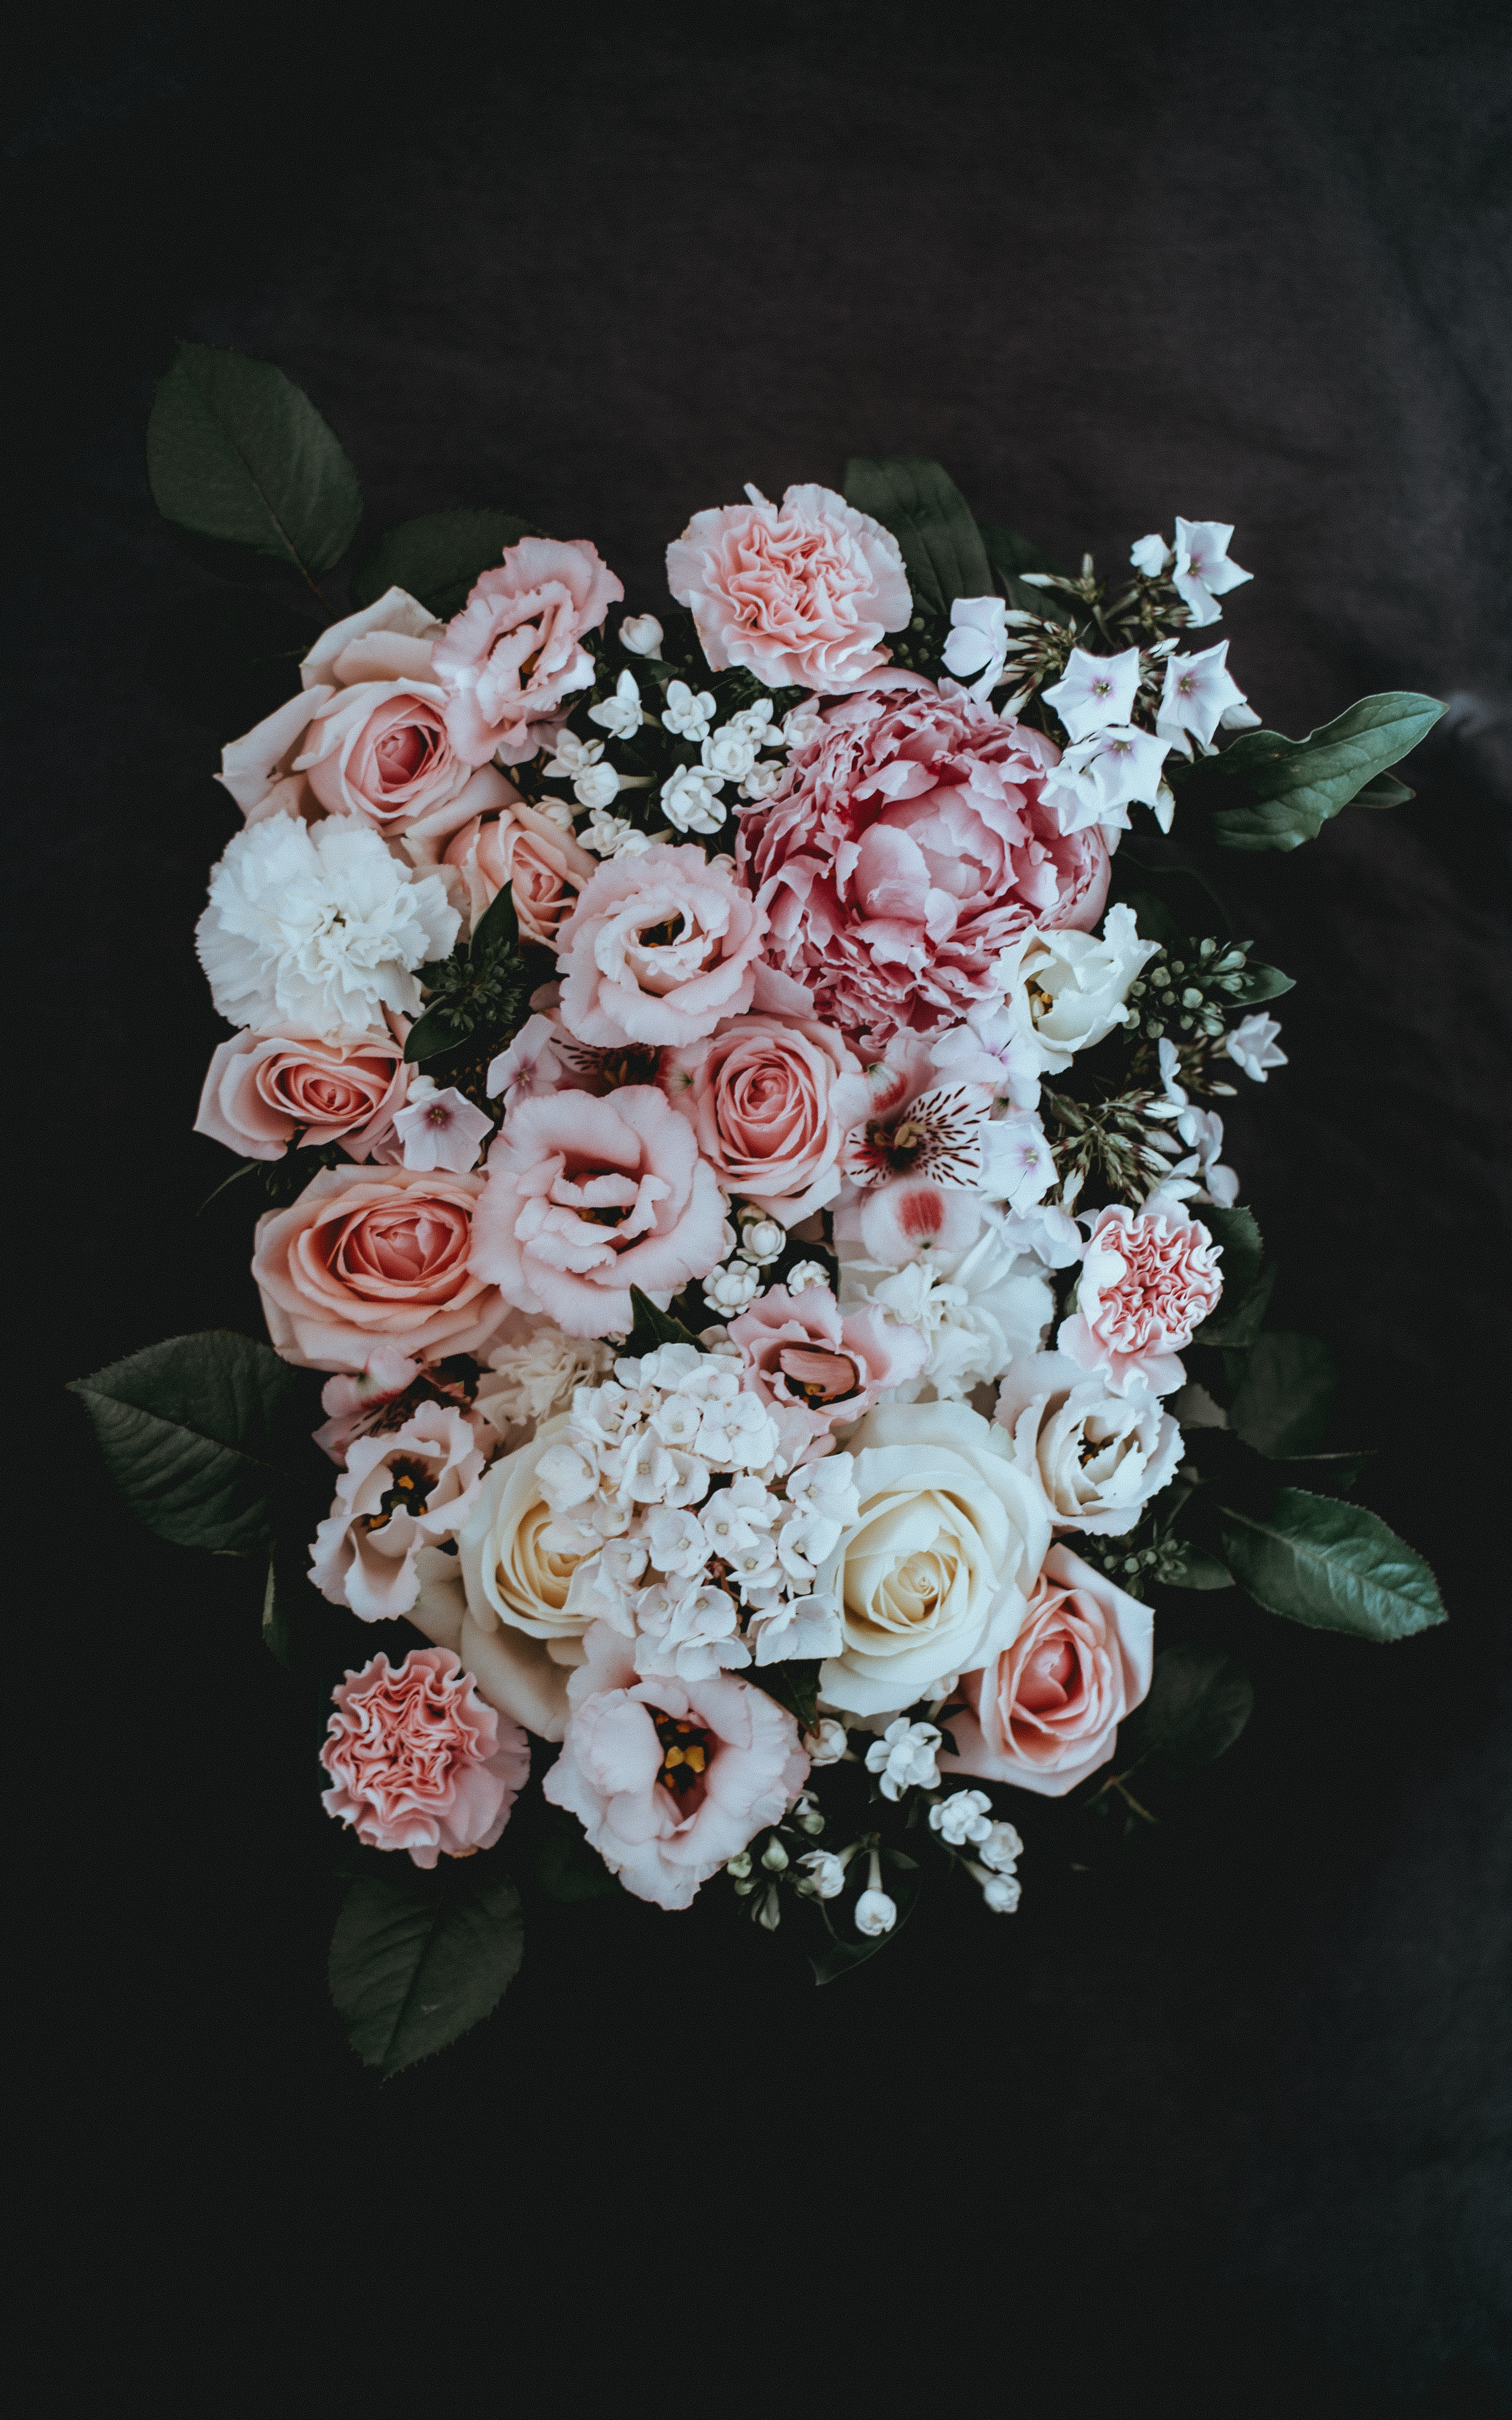 Magnificent floral bouquet of whites and pinks for a grand wedding